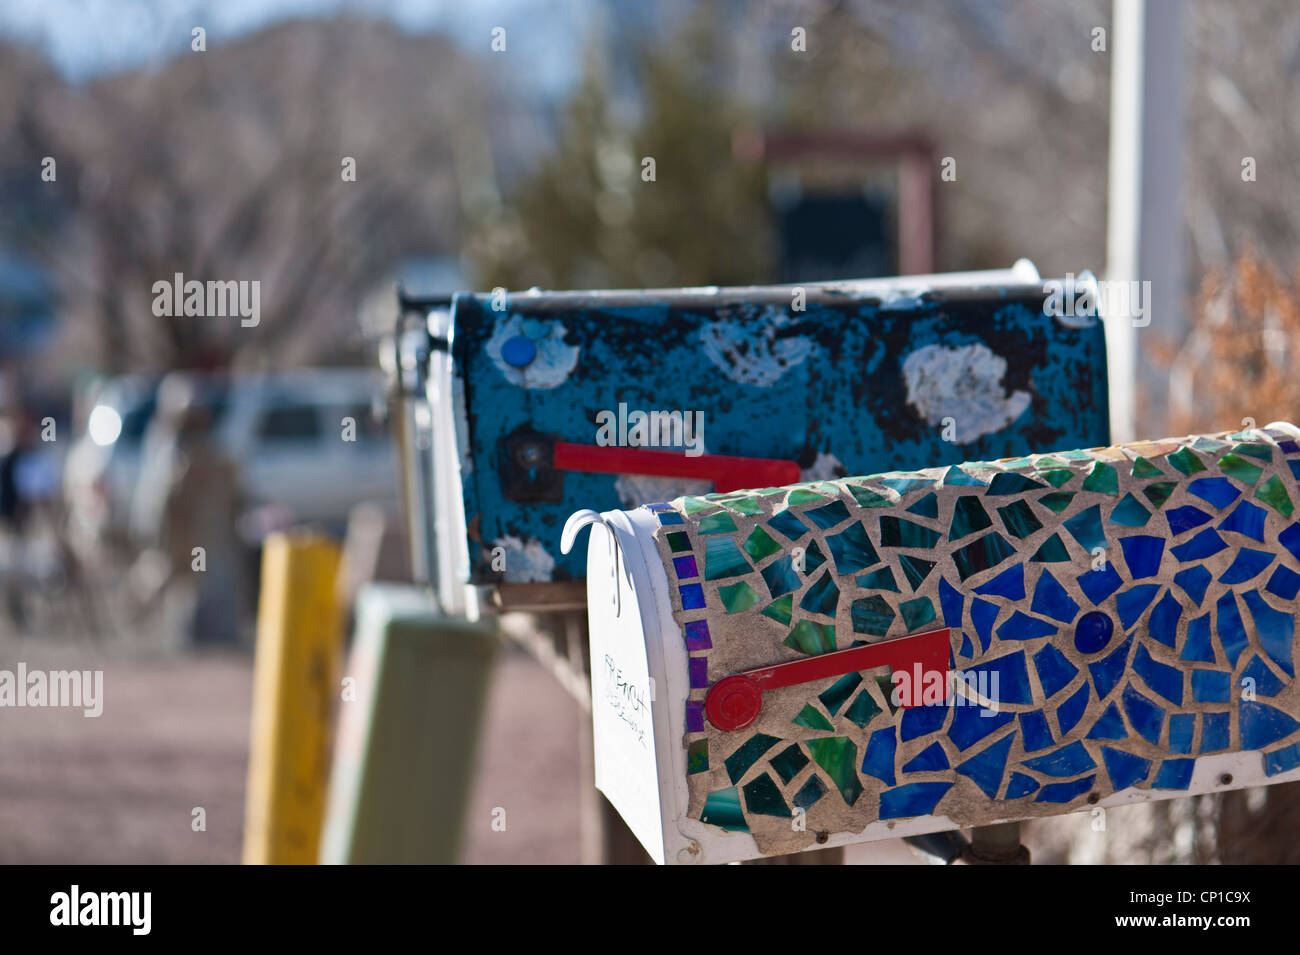 Detail of brightly decorated US style mailboxes in Madrid, New Mexico. Stock Photo